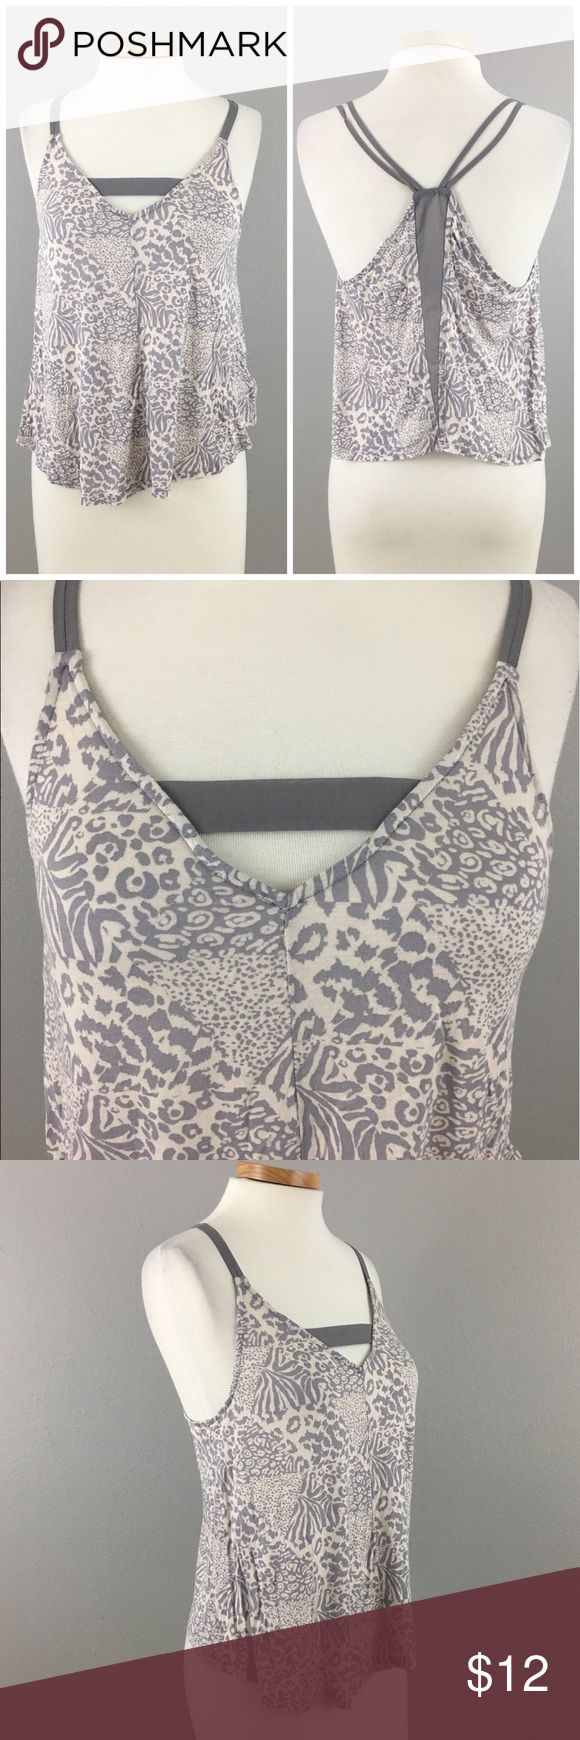 Silence & Noise Animal Print Lilac Strappy Tank Silence & Noise Animal Print Lilac Strappy Tank. Size small. Purchased from urban Outfitters.     Thank you for looking at my listing. Please feel free to comment with any questions (no trades/modeling).  •Condition: EUC, no visible flaws.  25% off all Bundles or 3+ items! Reasonable offers welcome. Visit me on INSTA @reupfashions. JC silence + noise Tops Tank Tops